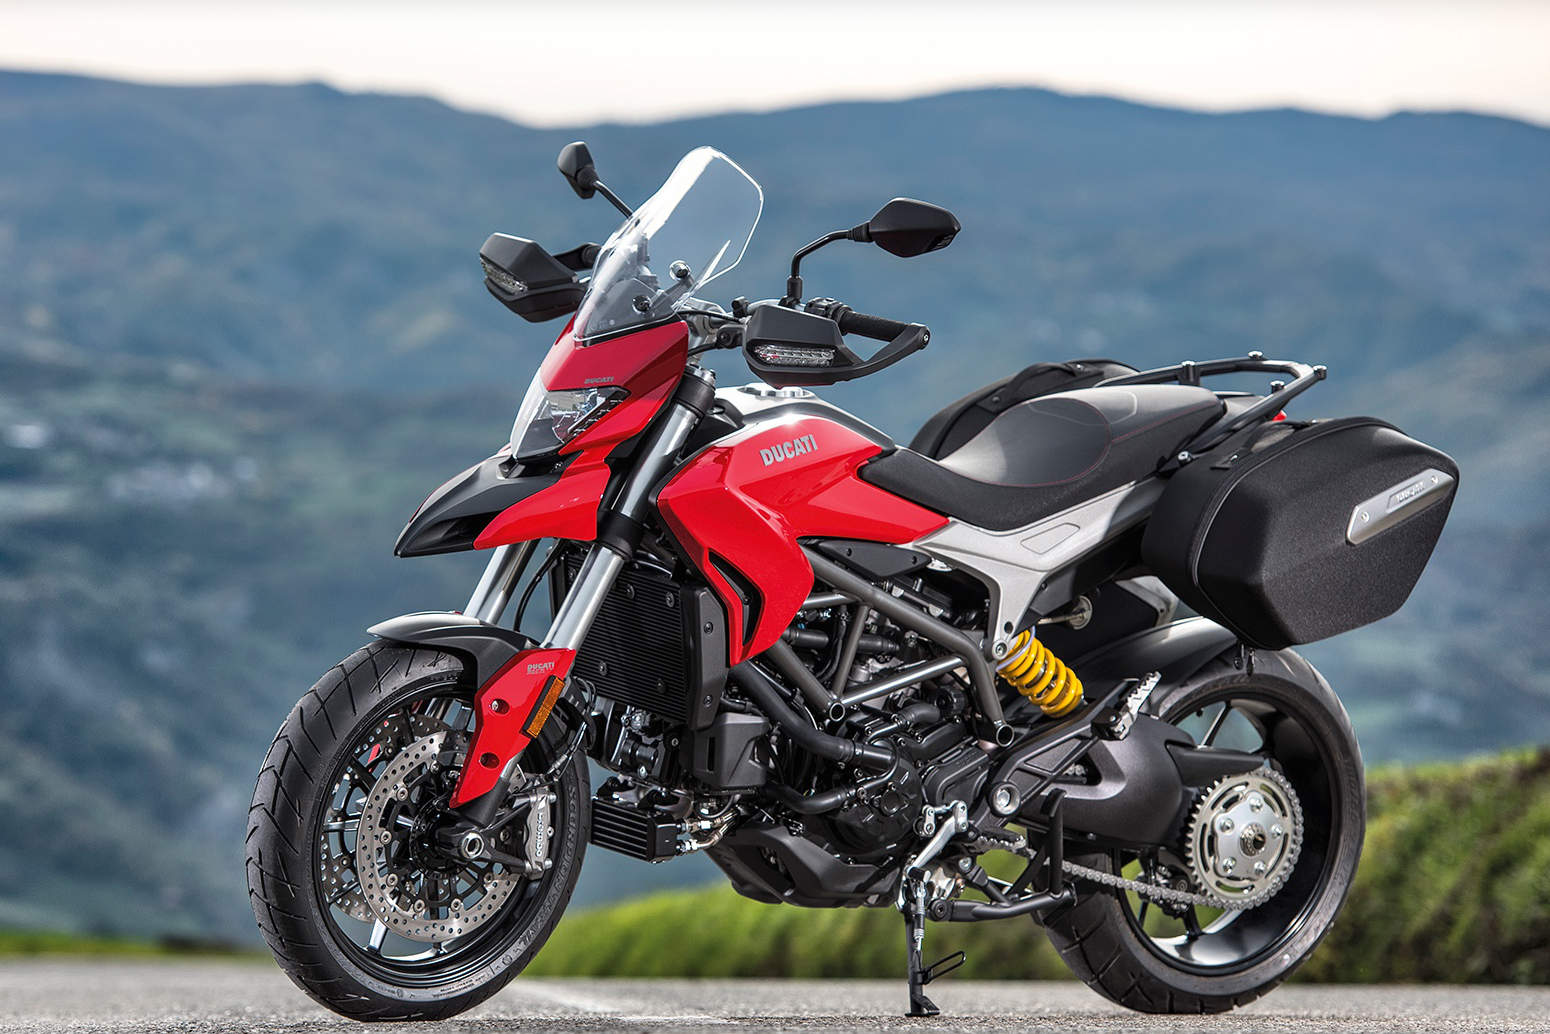 Ducati Hypermotard Family Gets Larger More Ful Engine For 2016 With Video Hypertop Hyperstrada